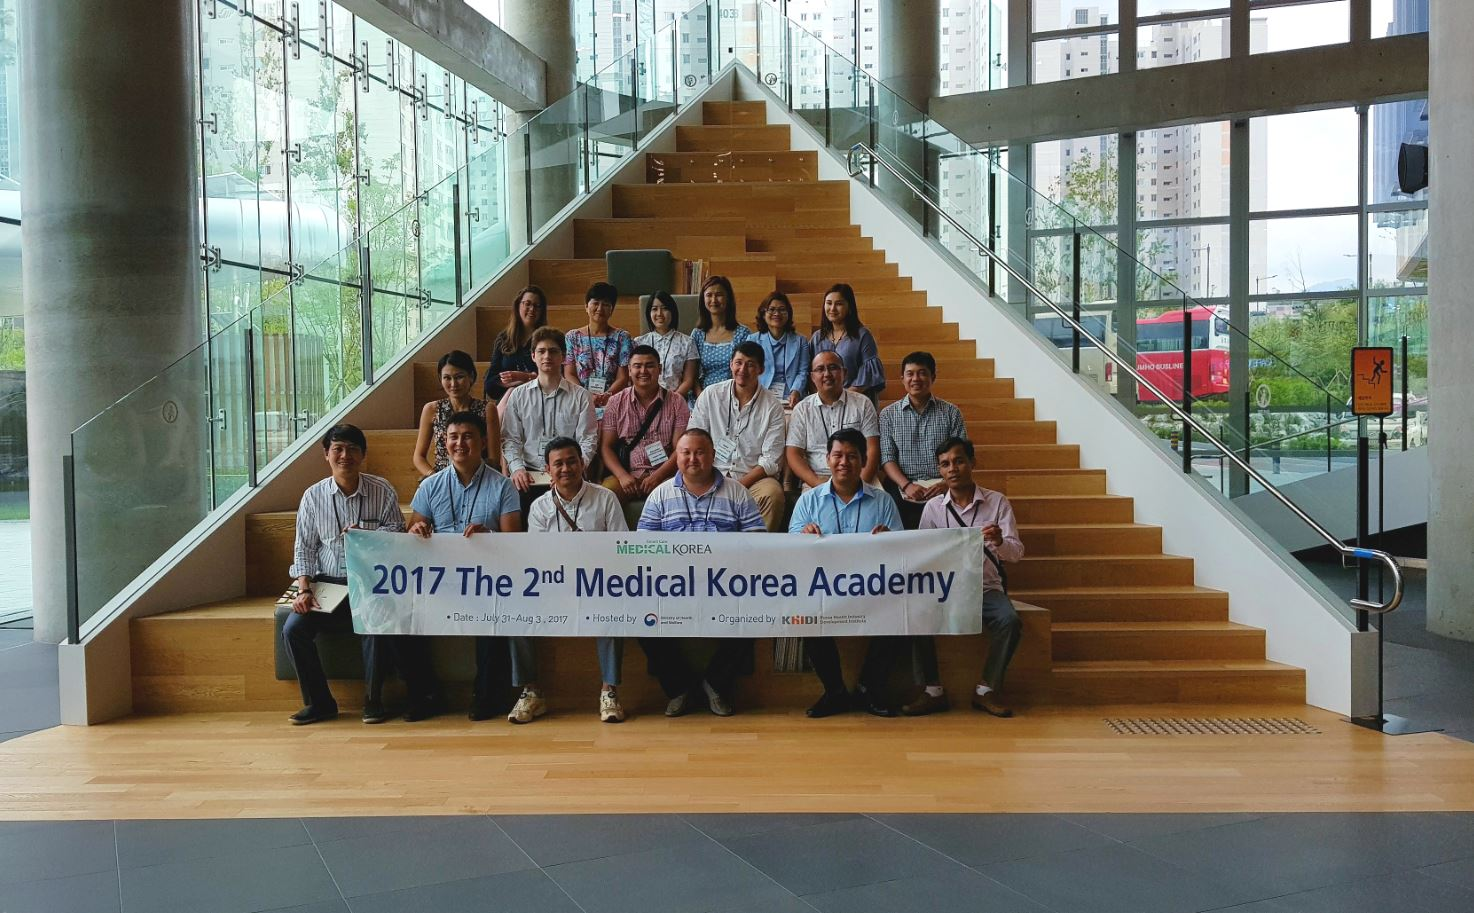 Visitors from Medical Korea Academy (2 Aug 2017)